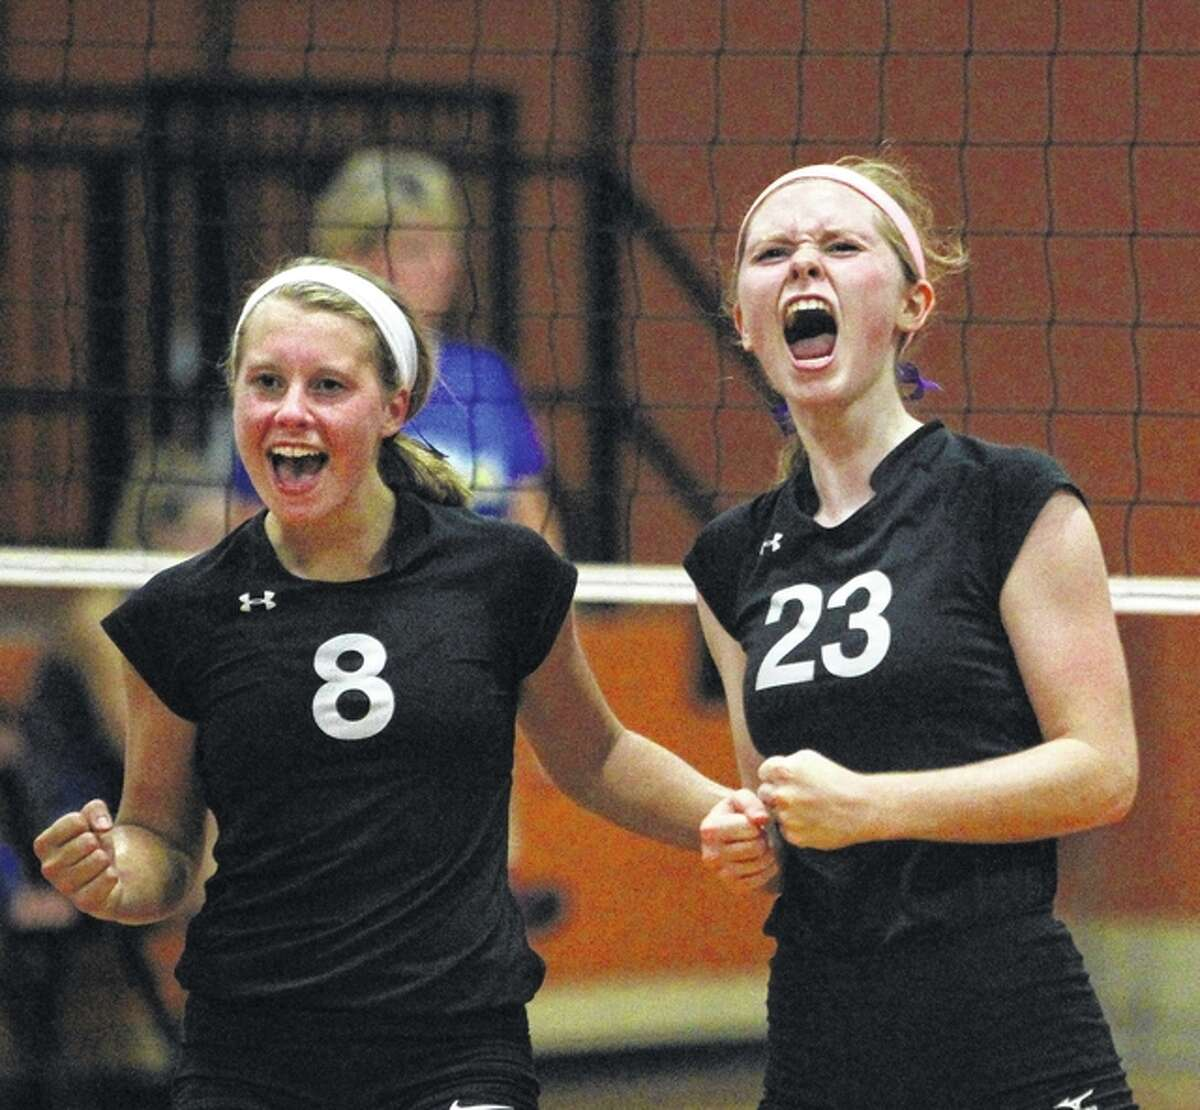 West Central's Sara Piechowski (left) and Michelle Brown celebrate a point in a win over Pleasant Hill at Meredosia Monday night.